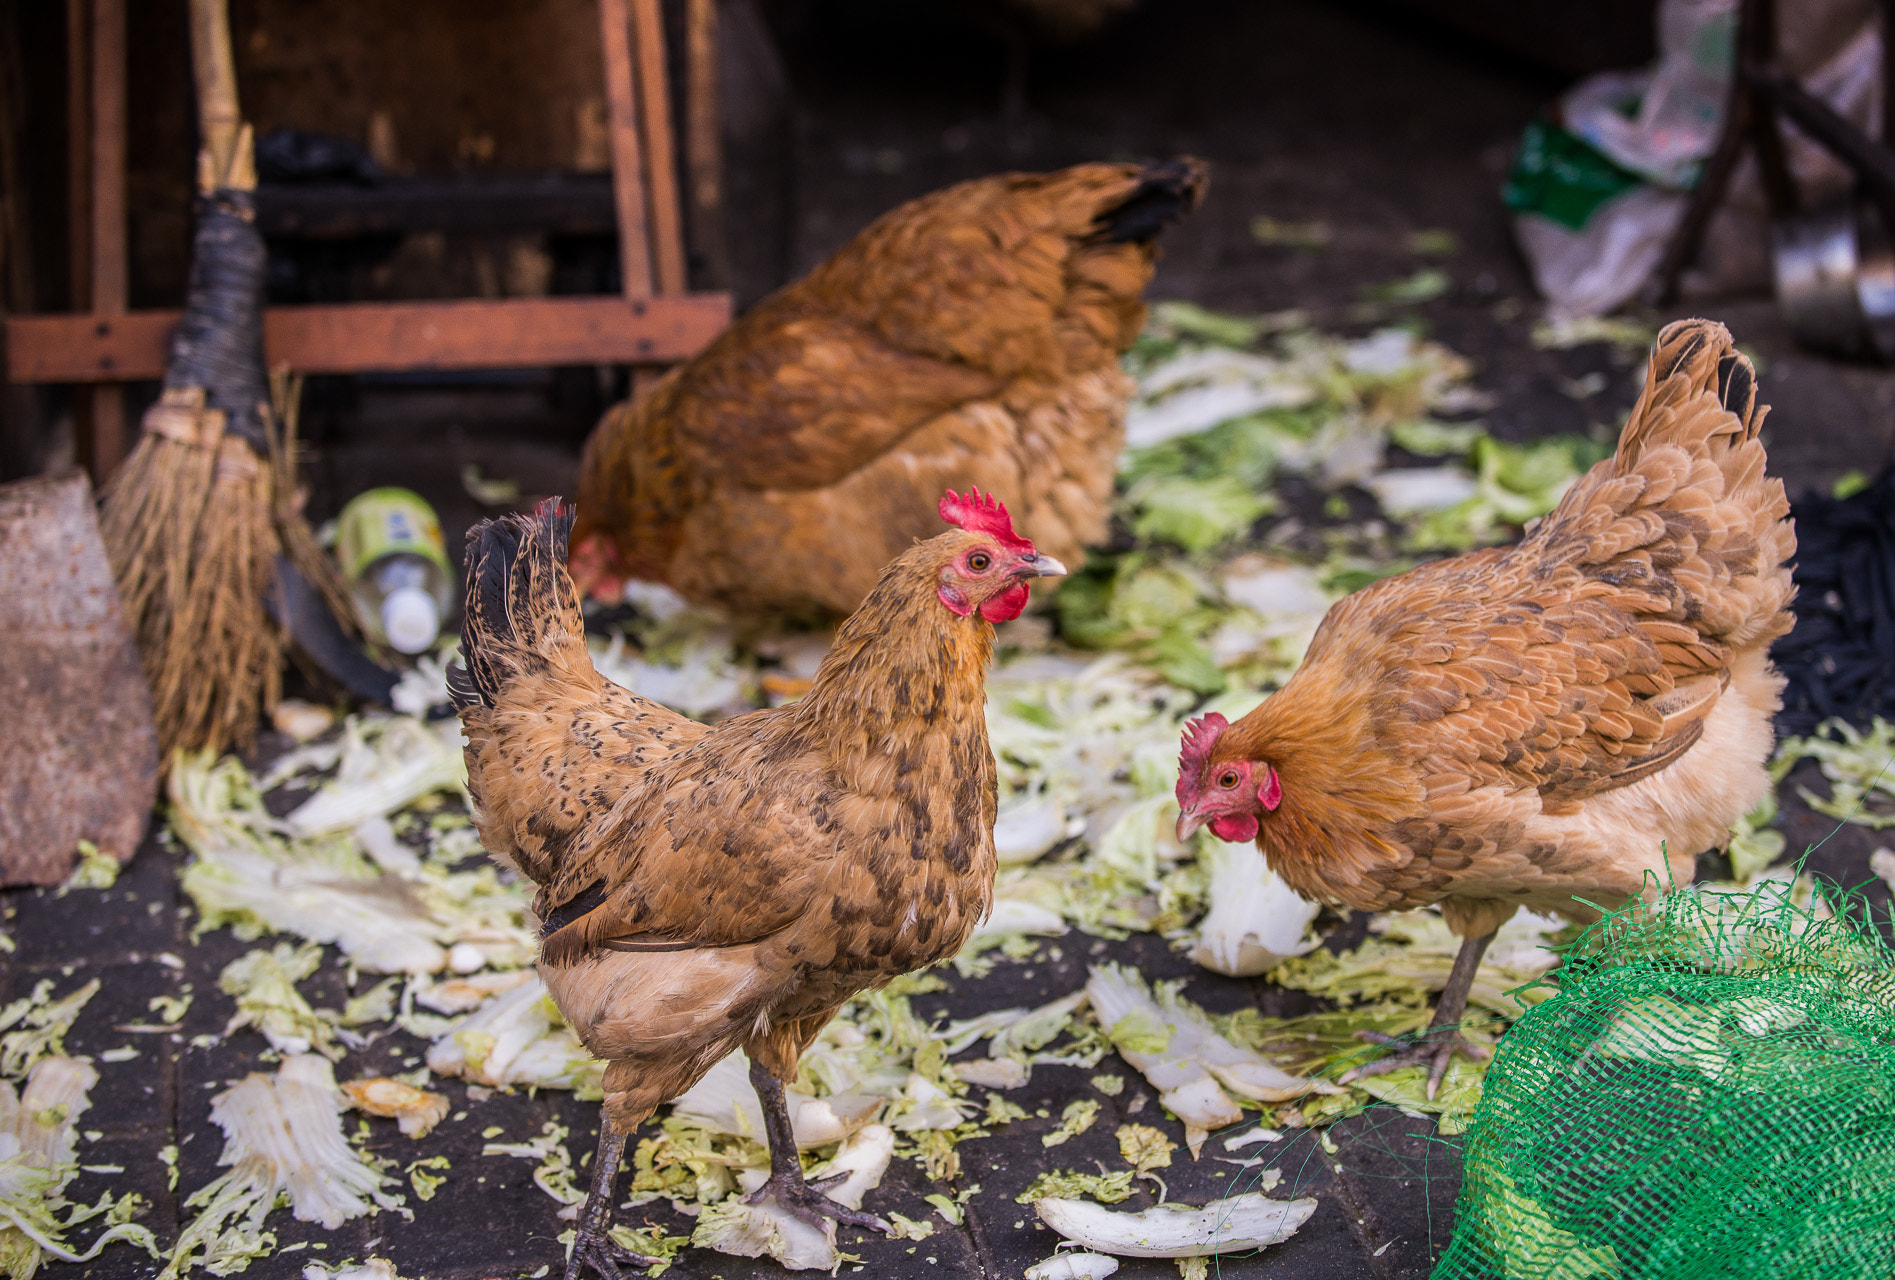 Photograph Poultry in the Making by Kevin Dharmawan on 500px